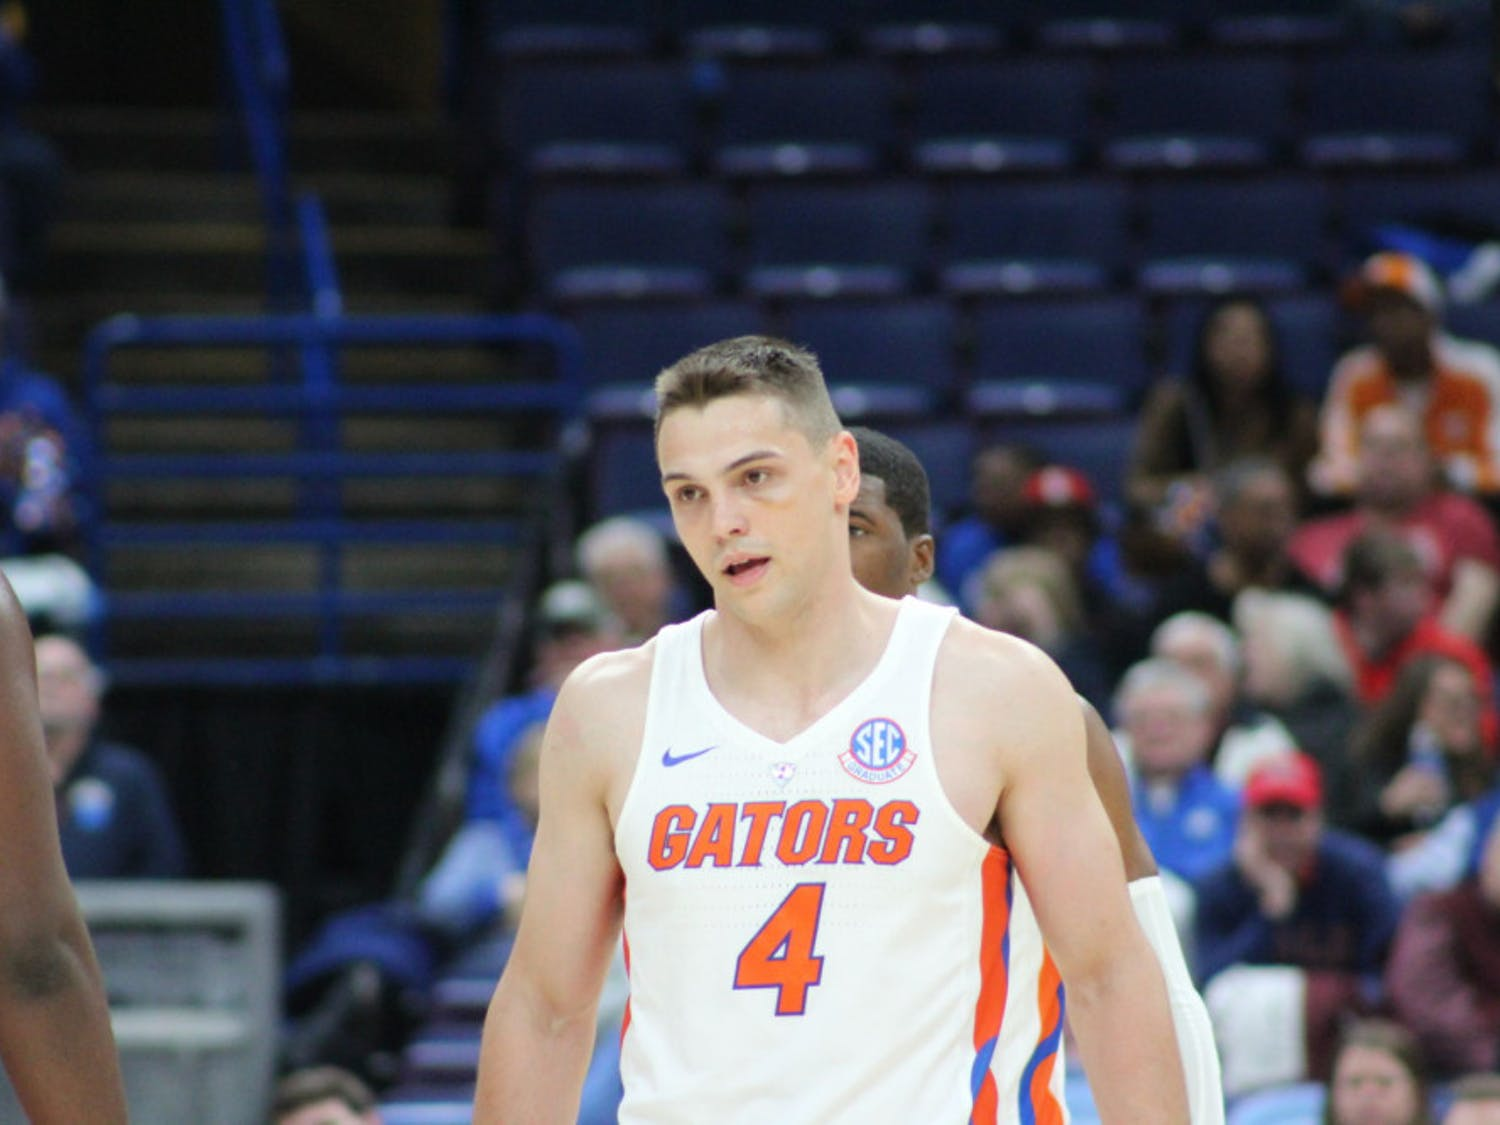 Guard Egor Koulechov ended his only season at Florida as the second-leading scorer with 13.8 points per game.